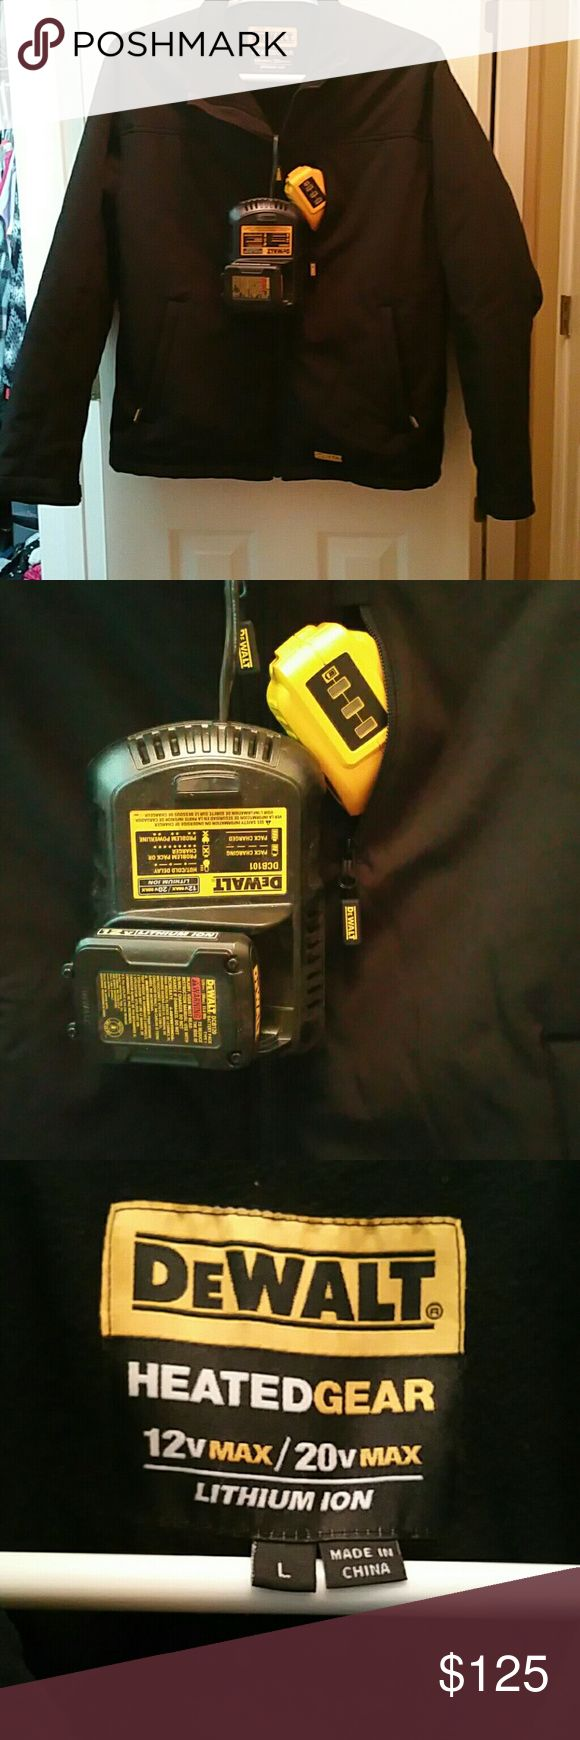 Men's DeWalt 4 Zone LED control temp. Jacject 4 heating zones within the jacket. LED control with three temperature settings plus a preheat option. Routing ports for USB cable for cell phone charging. I purchased it for my husband but he absolutely will not wear it. It's a great hope for anyone who works outside any man would appreciate this jacket and I'm going to let it go at a really great deal. The jacket was purchased without the battery pack, so the battery pack was an additional 50 to…